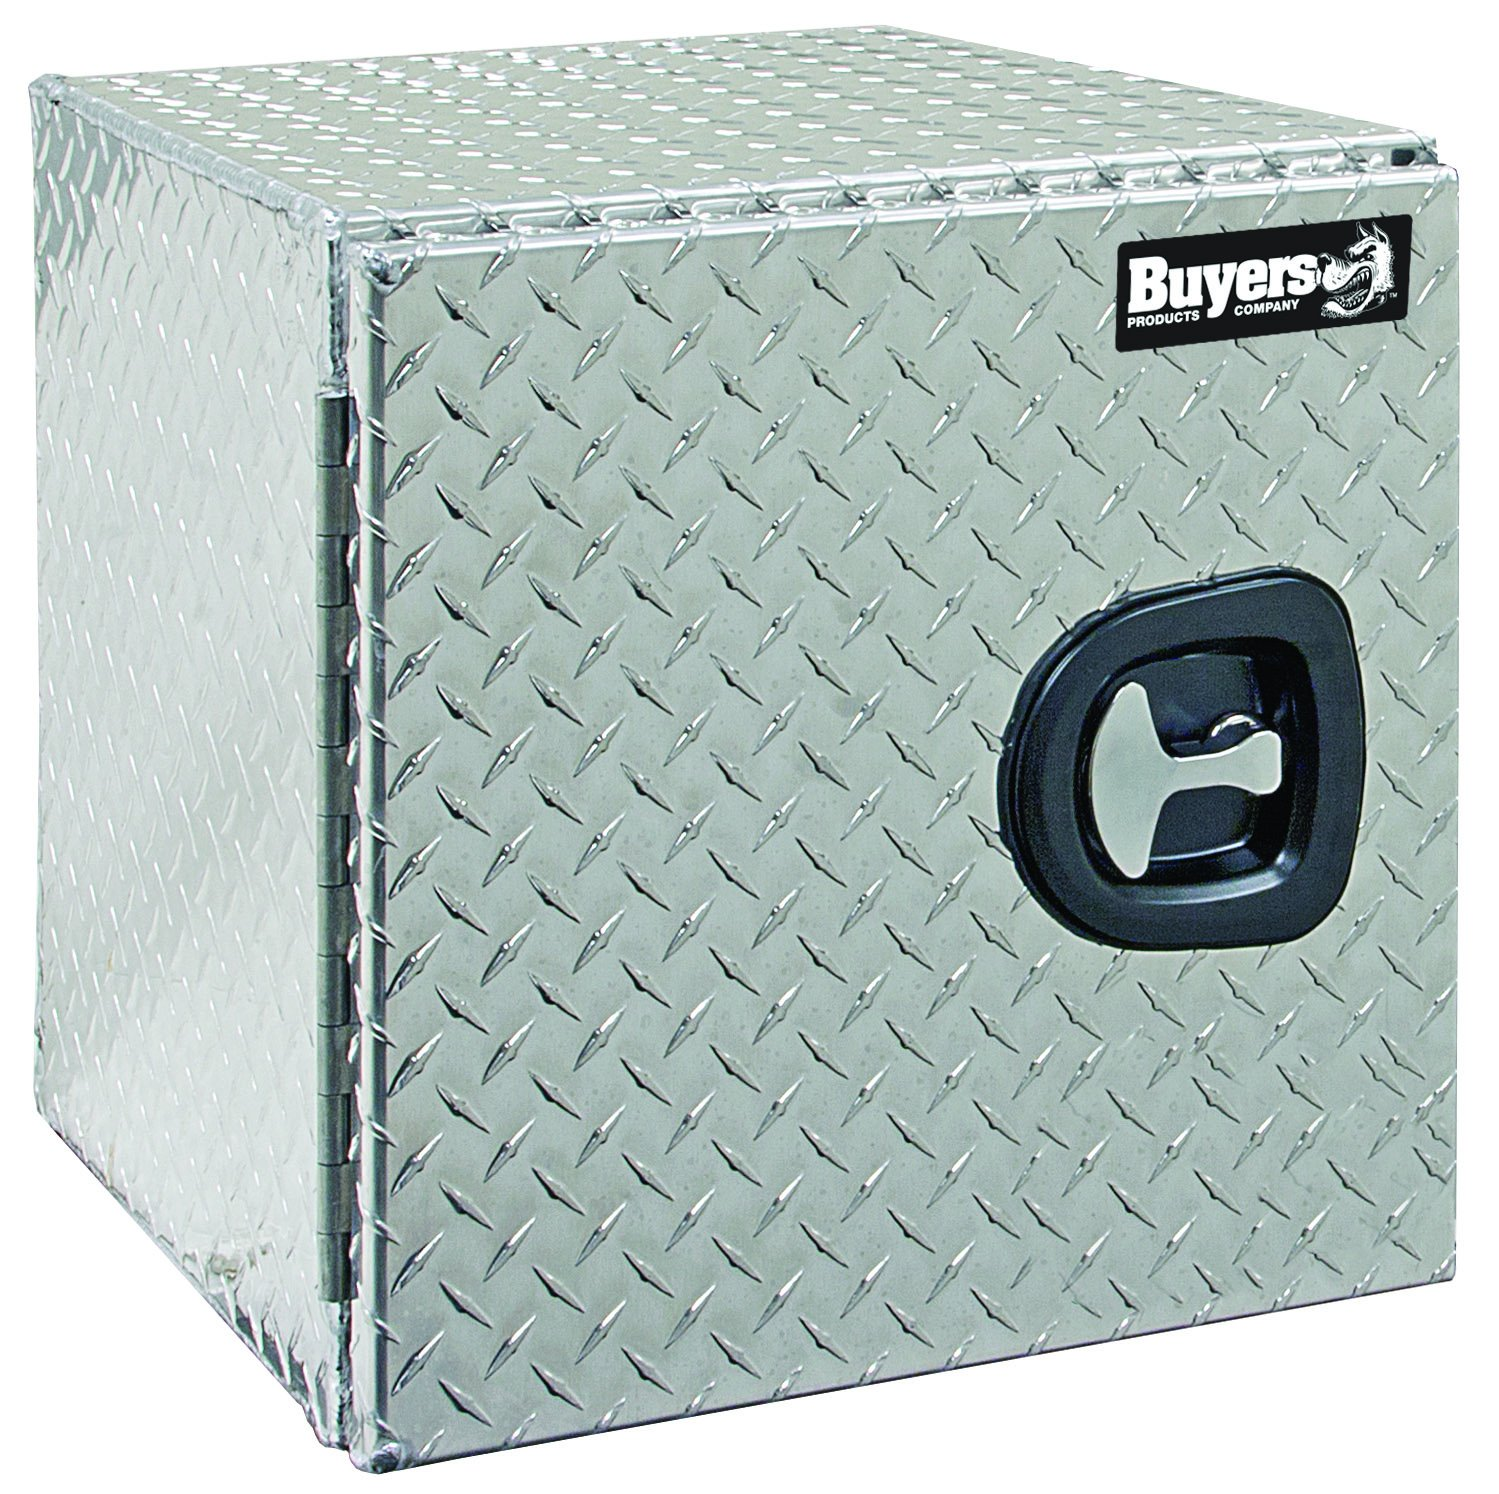 Buyers Products 1705200 Diamond Tread Aluminum Underbody Truck Box w/Barn Door (18x18x24 Inch)